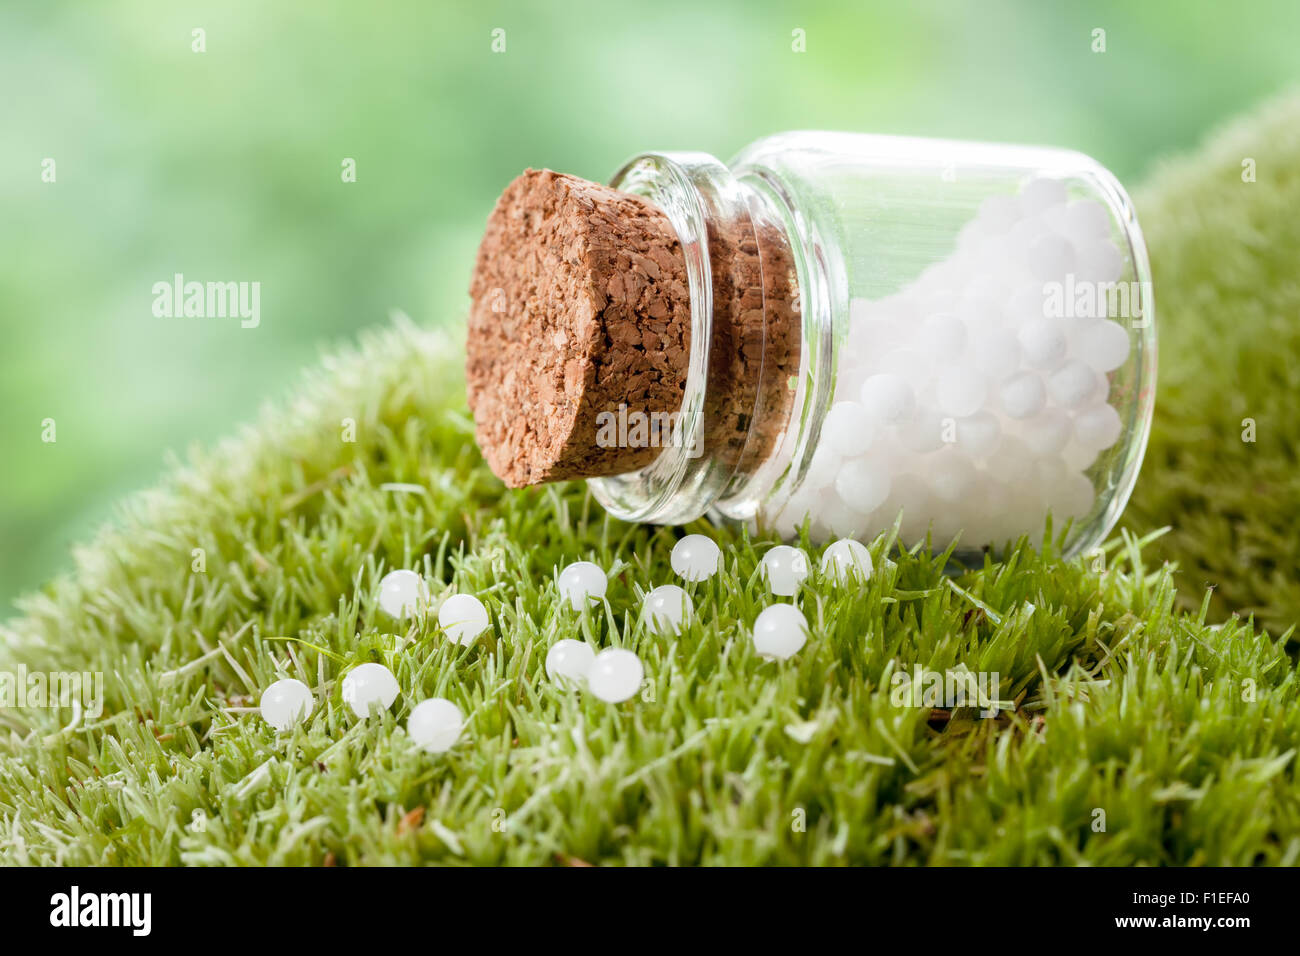 Bottle of homeopathy globules on green moss - Stock Image